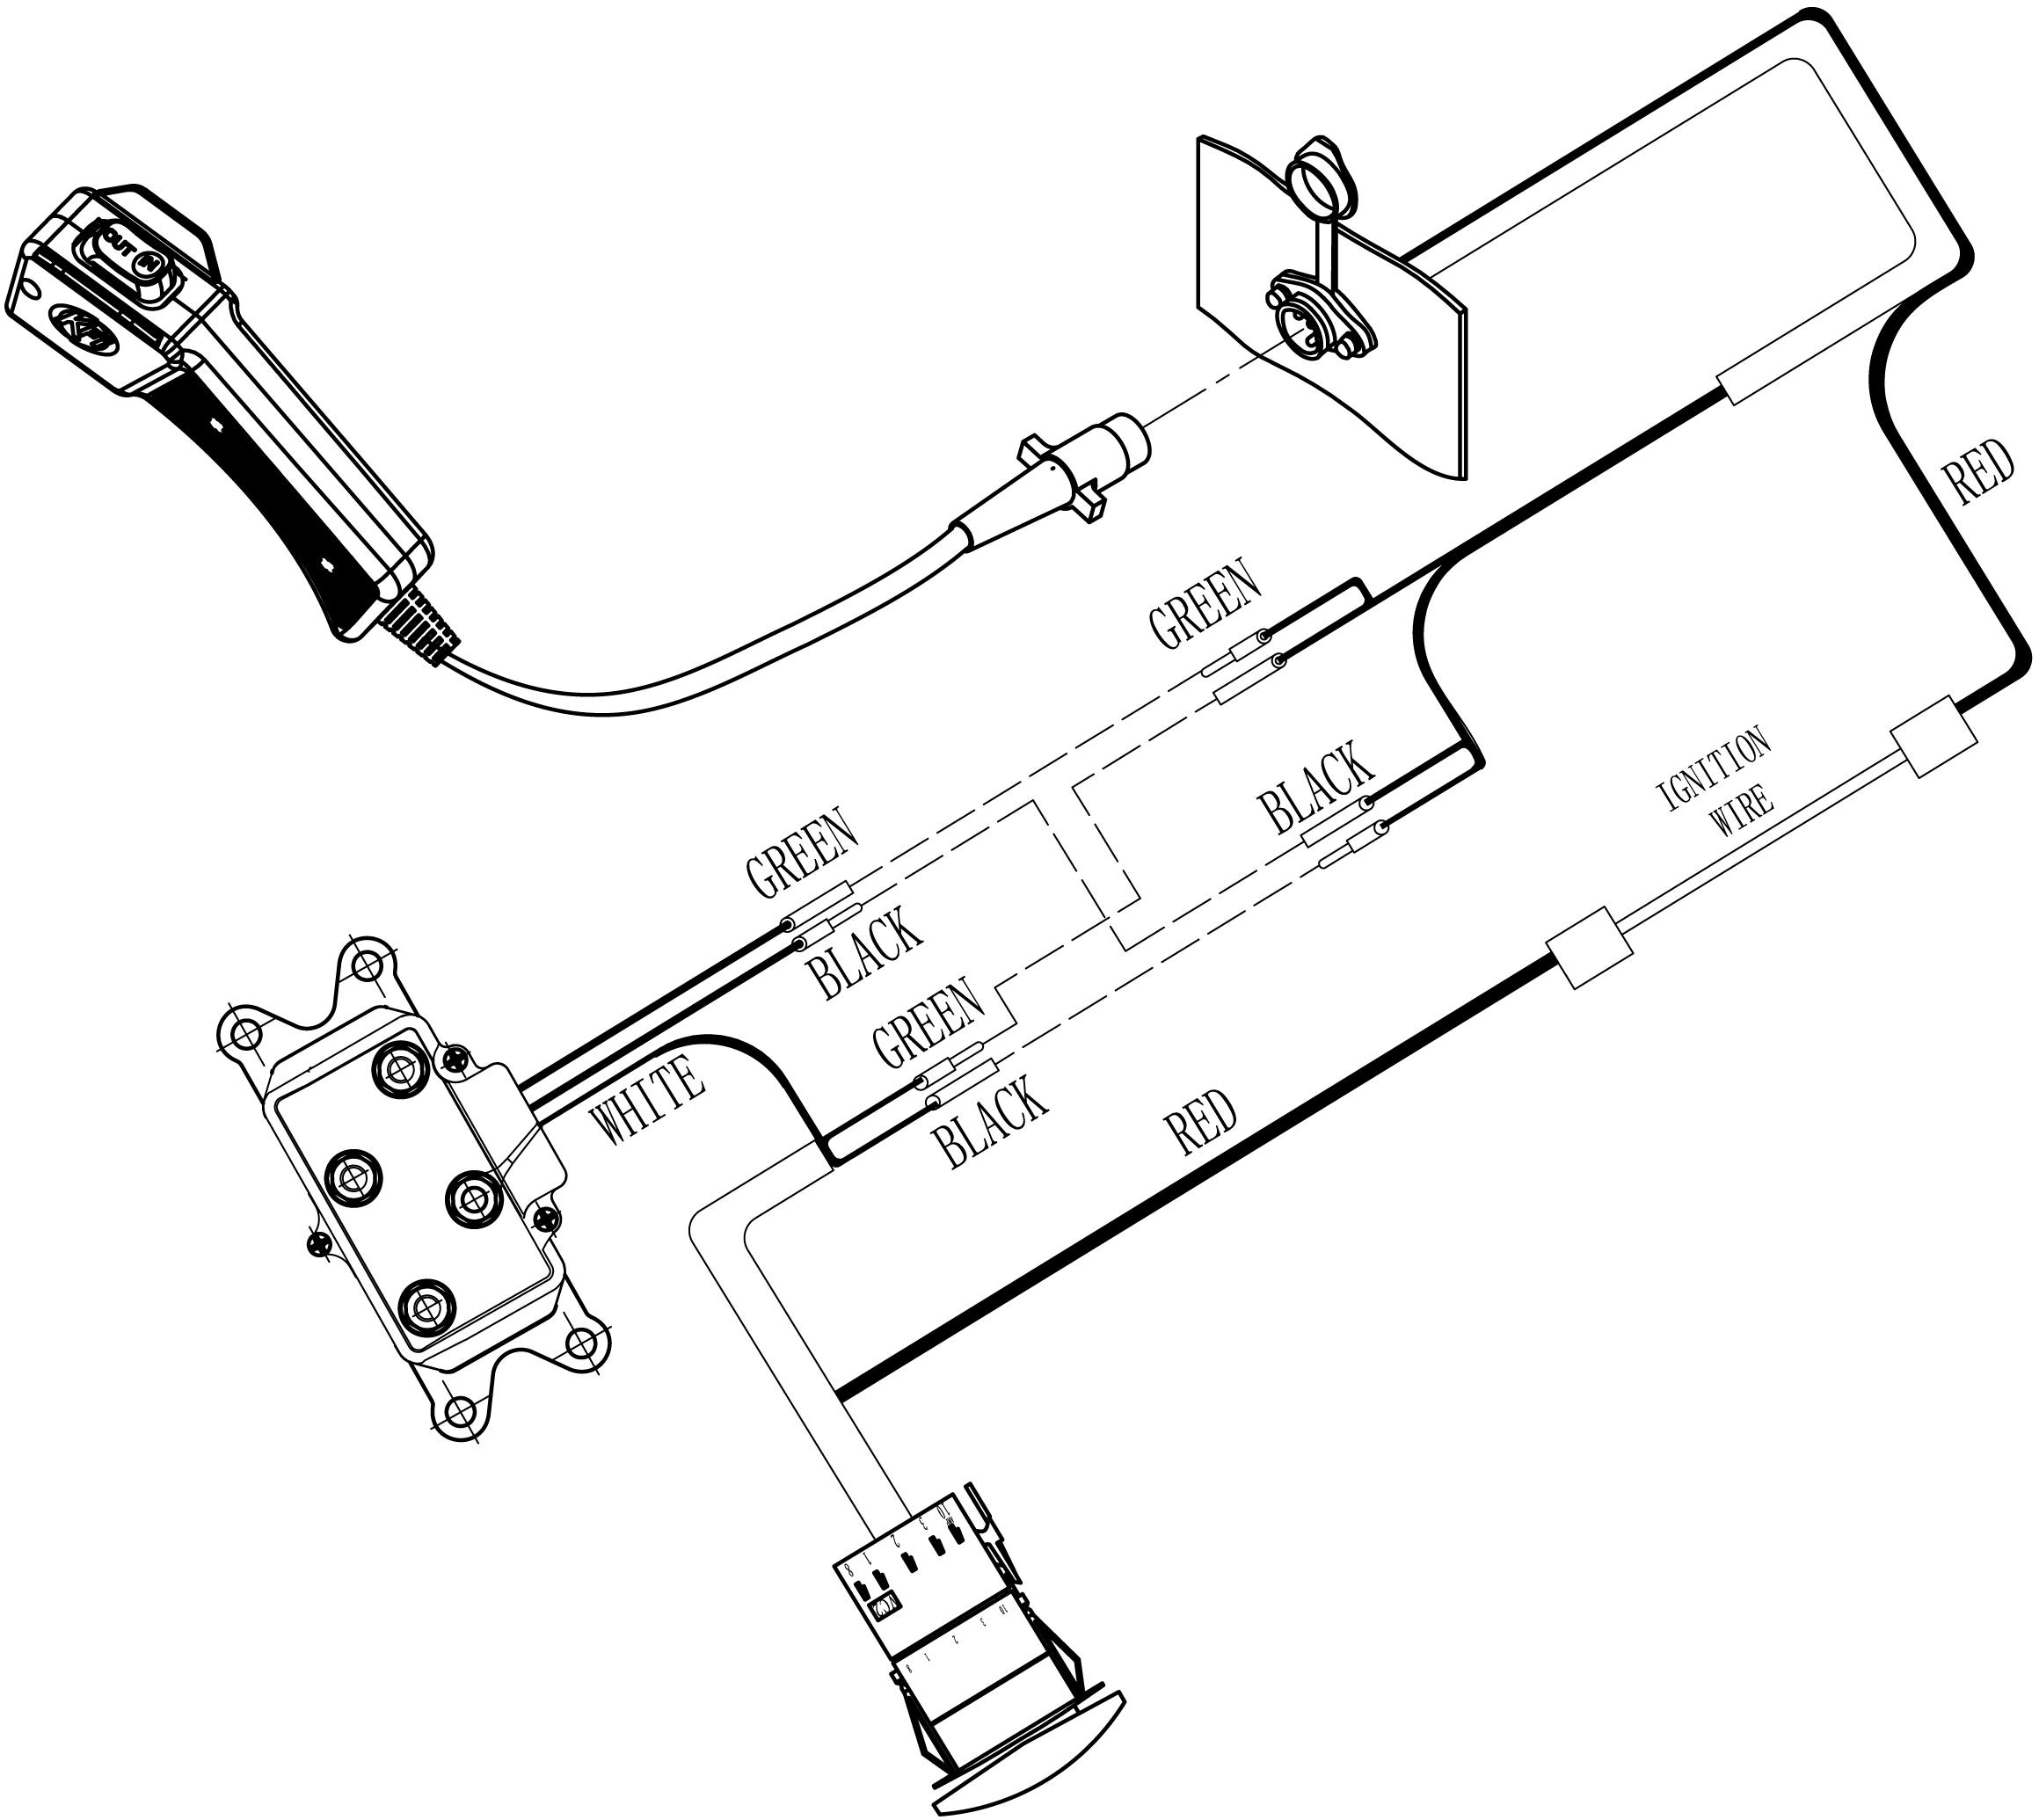 KFI_Carling_Switch_Wring_Diagram kfi winch wiring diagram atv winch solenoid wiring diagram kfi winch contactor wiring diagram at virtualis.co